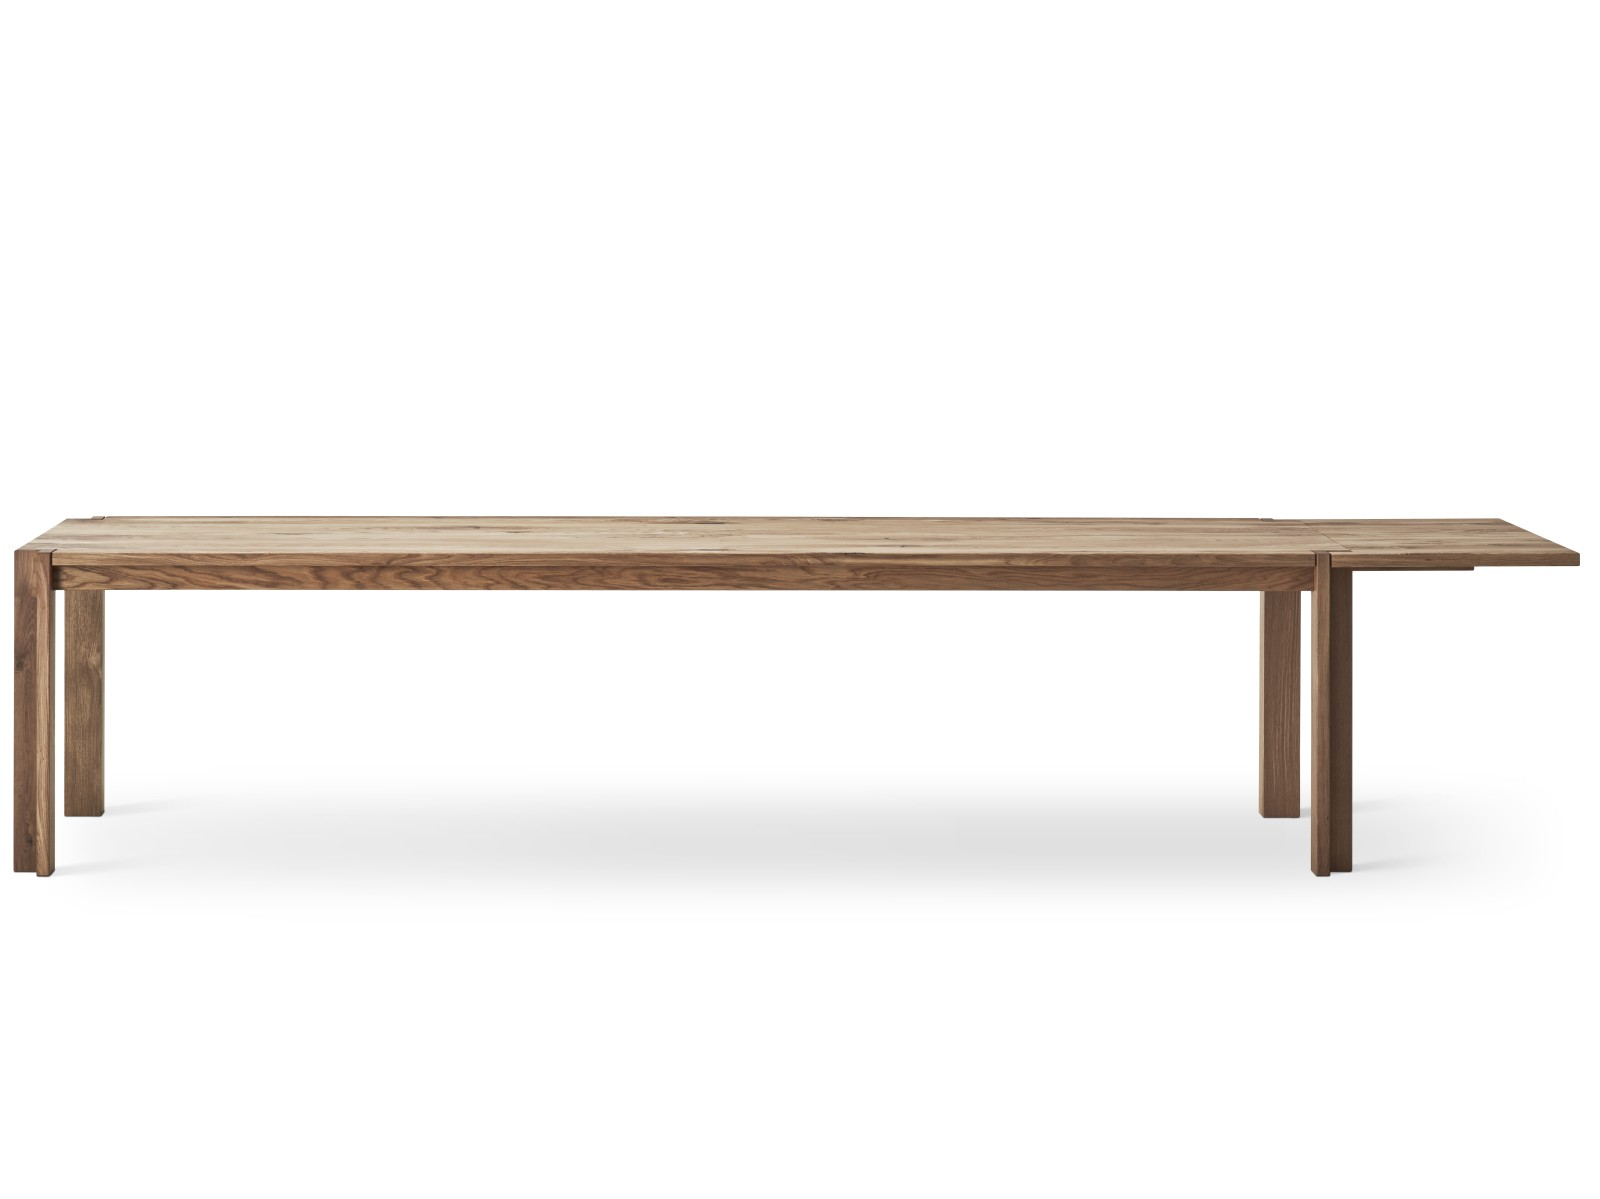 Jeppe Utzon Dining Table with Extension Wild Oak Oil Treatment, 210cm